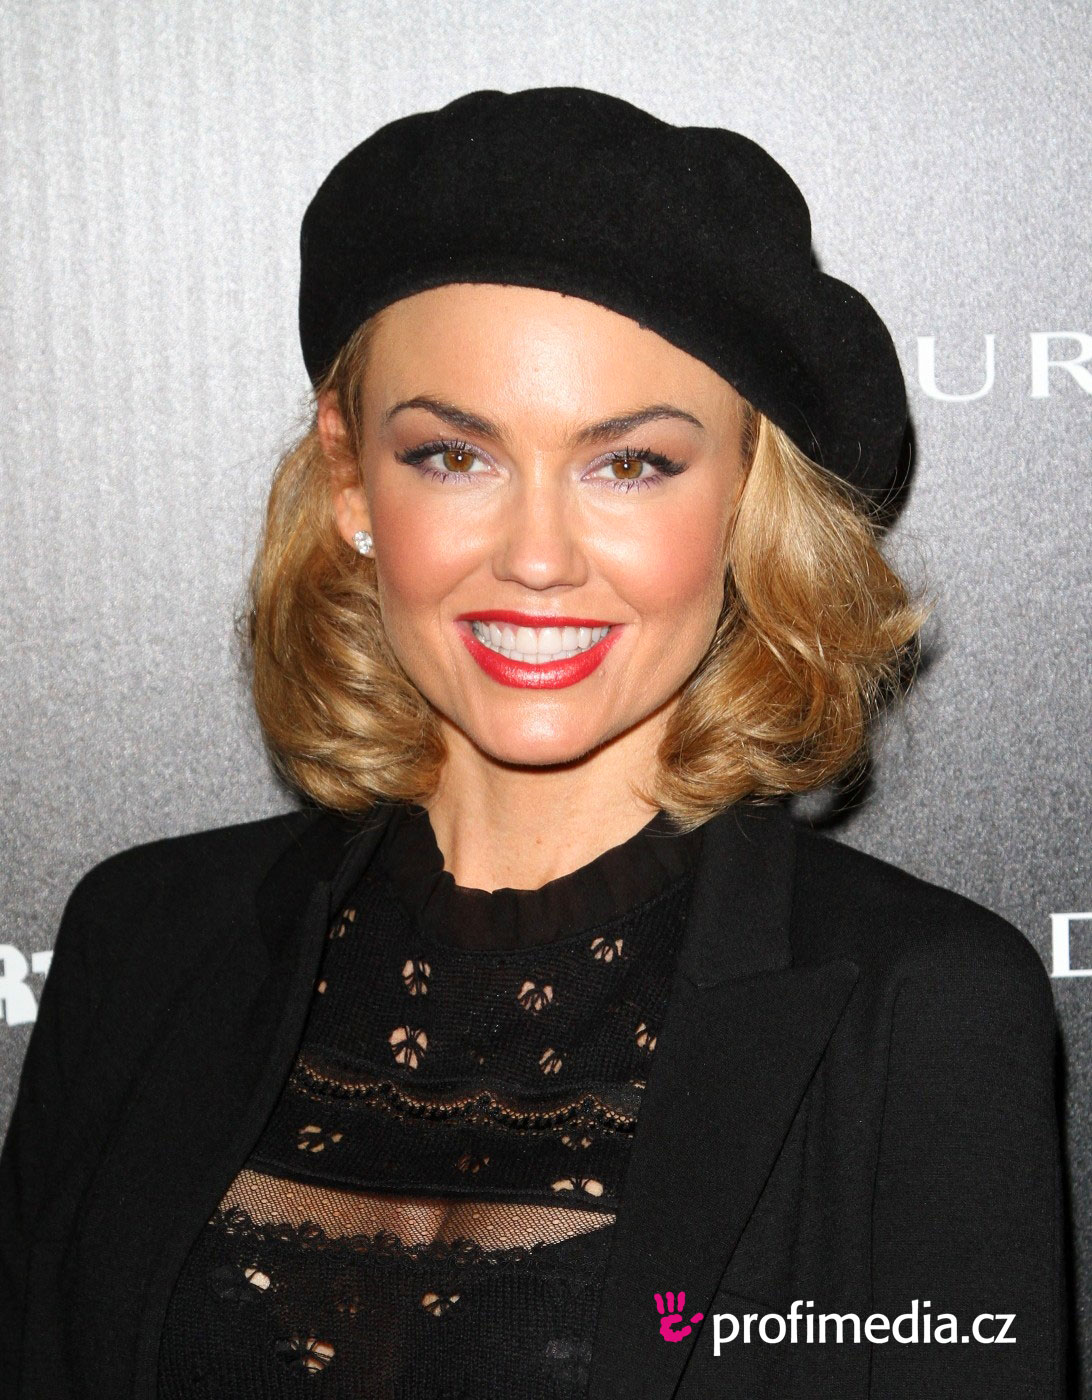 Kelly Carlson Hairstyle EasyHairStyler - Hairstyles for short hair upload photo